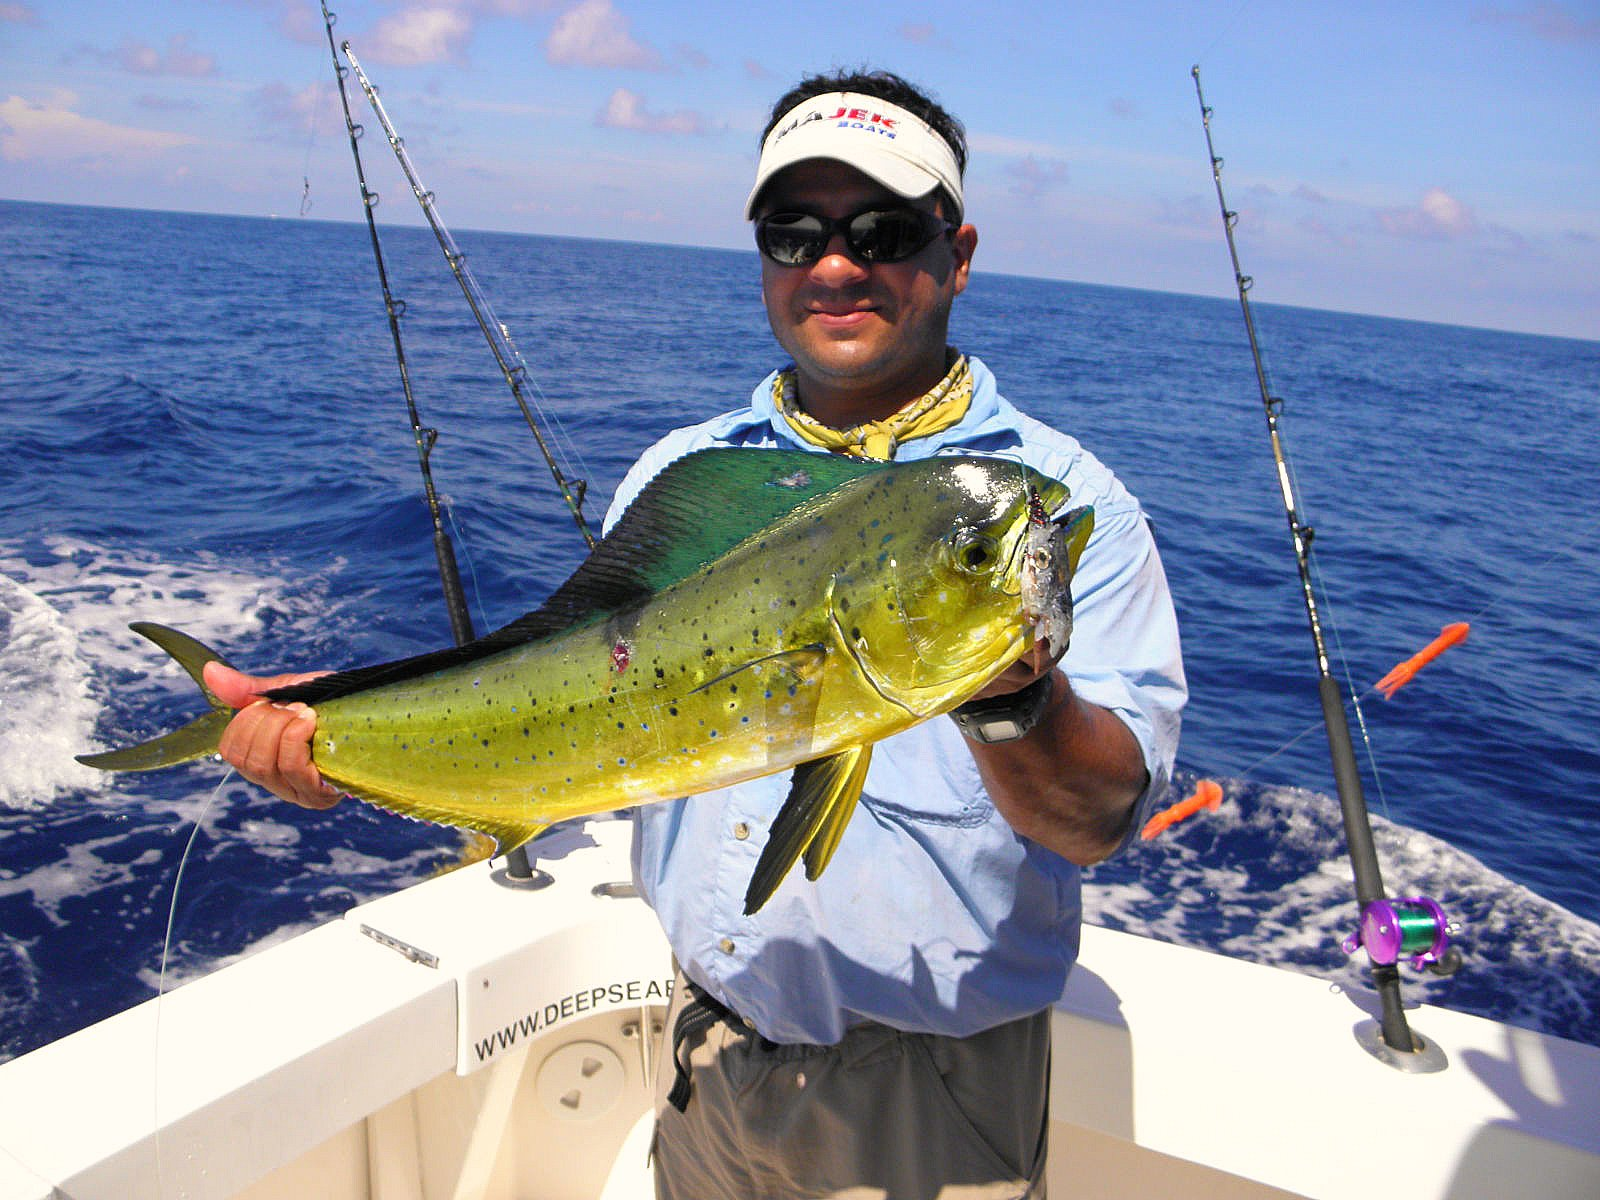 Shared fishing cancun cancun shared fishing trip cancun for Cancun fishing trips